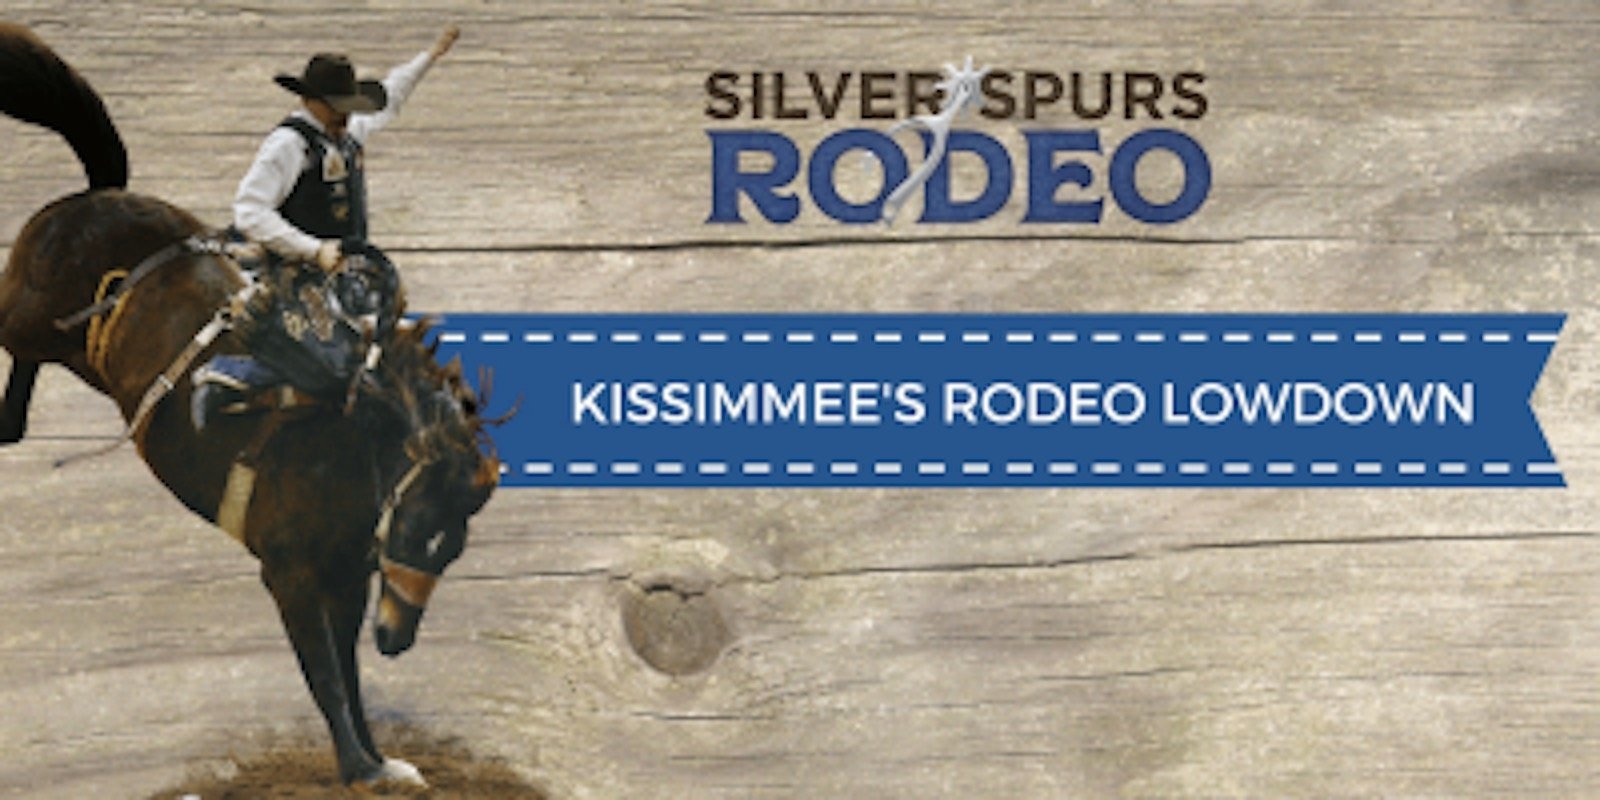 Kissimmee rodeos